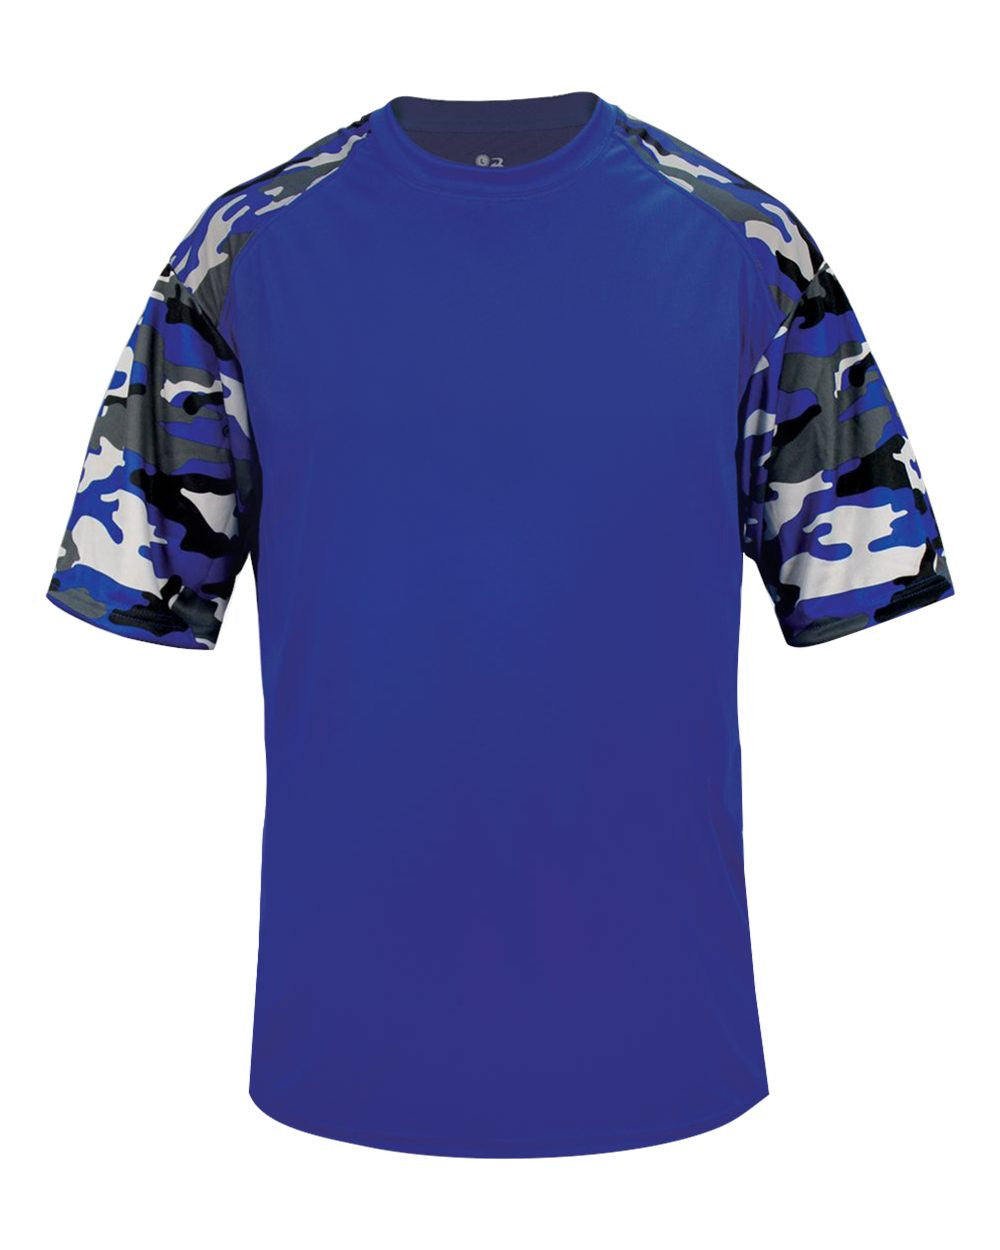 VLL Majors Dodgers OPTIONAL Camo Sport T-Shirt - All Sizes Royal